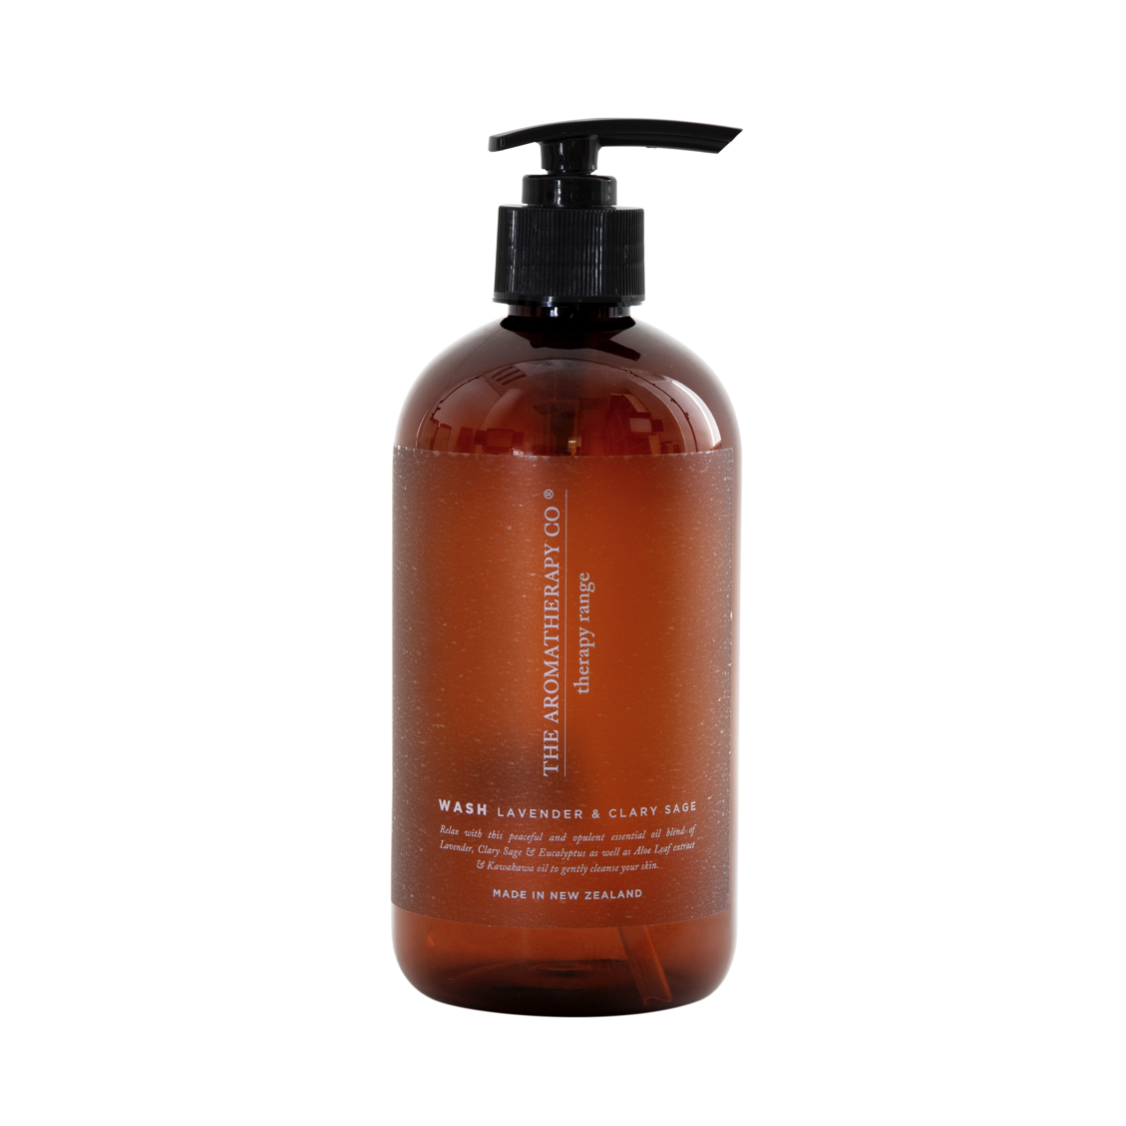 THERAPY HAND & BODY WASH - RELAX - LAVENDER & CLARY SAGE